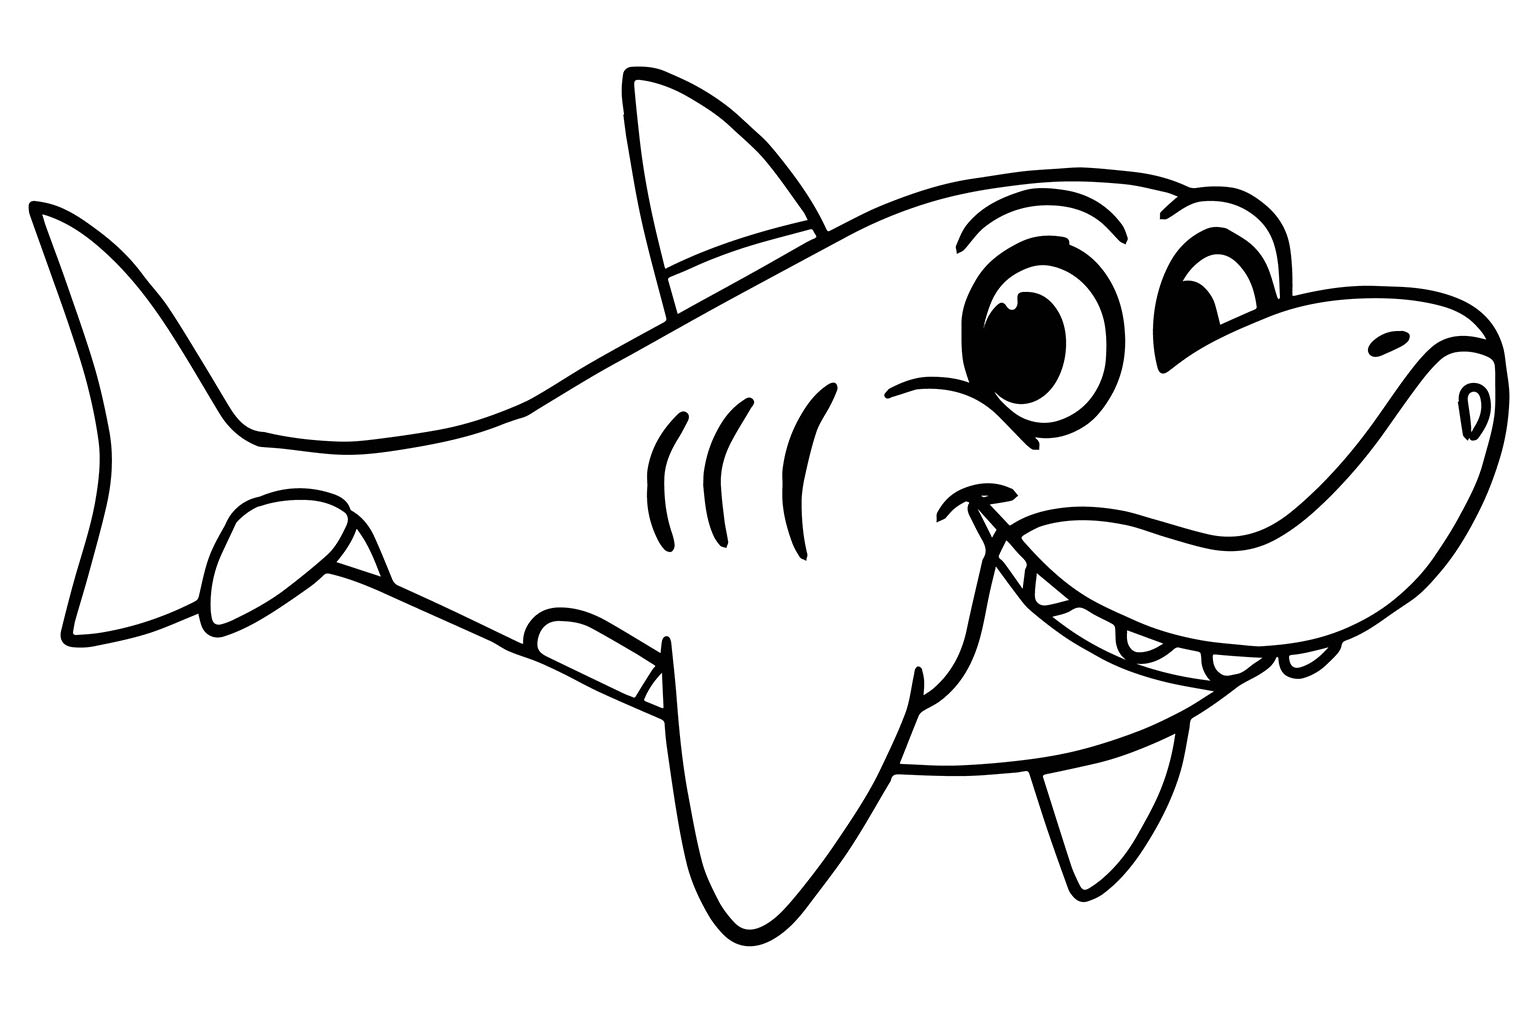 shark coloring pictures to print 33 free shark coloring pages printable shark pictures to coloring print